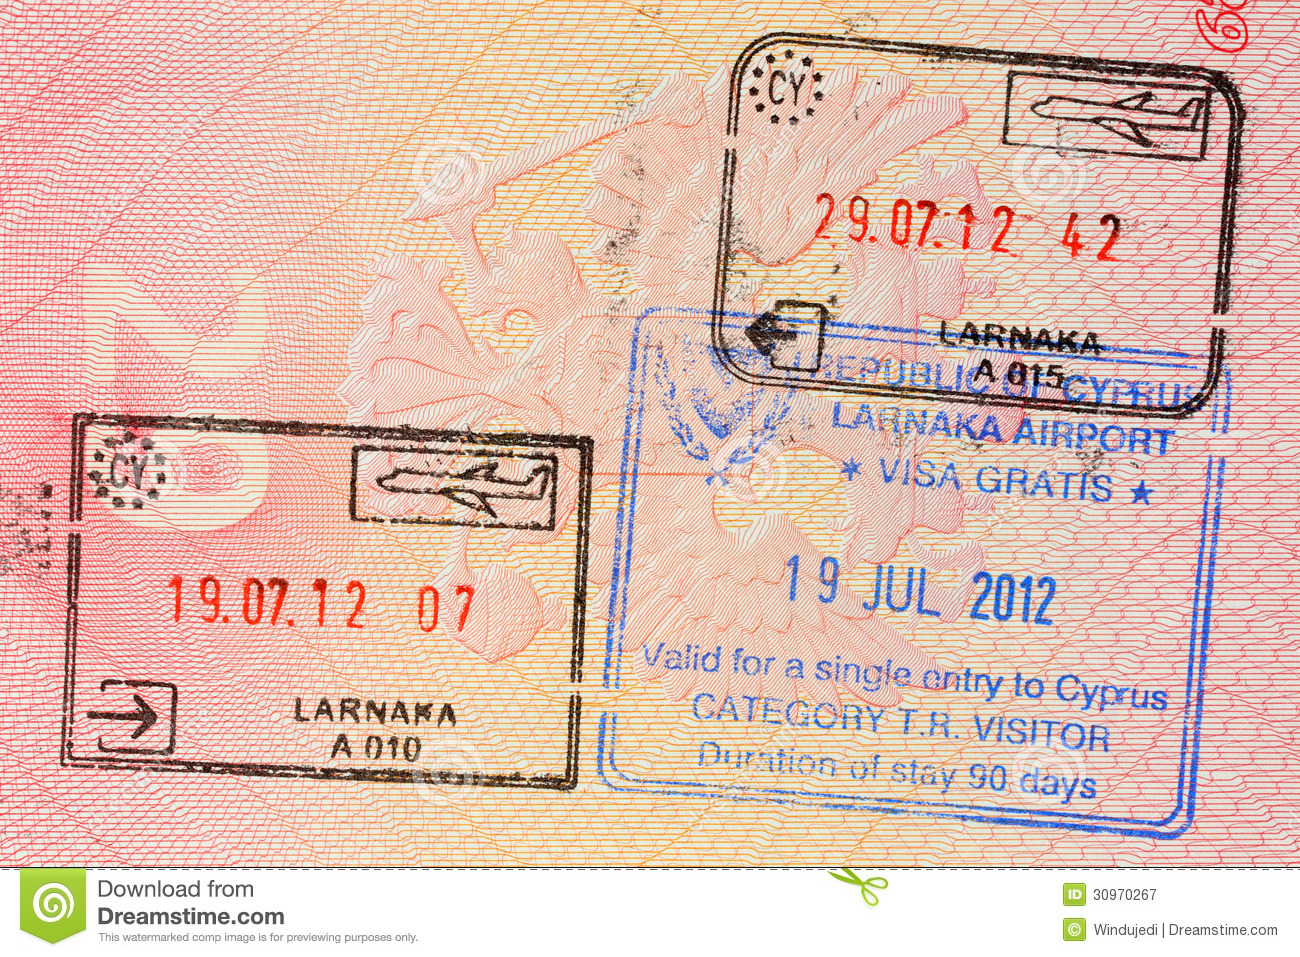 how to get visa seal on a passport